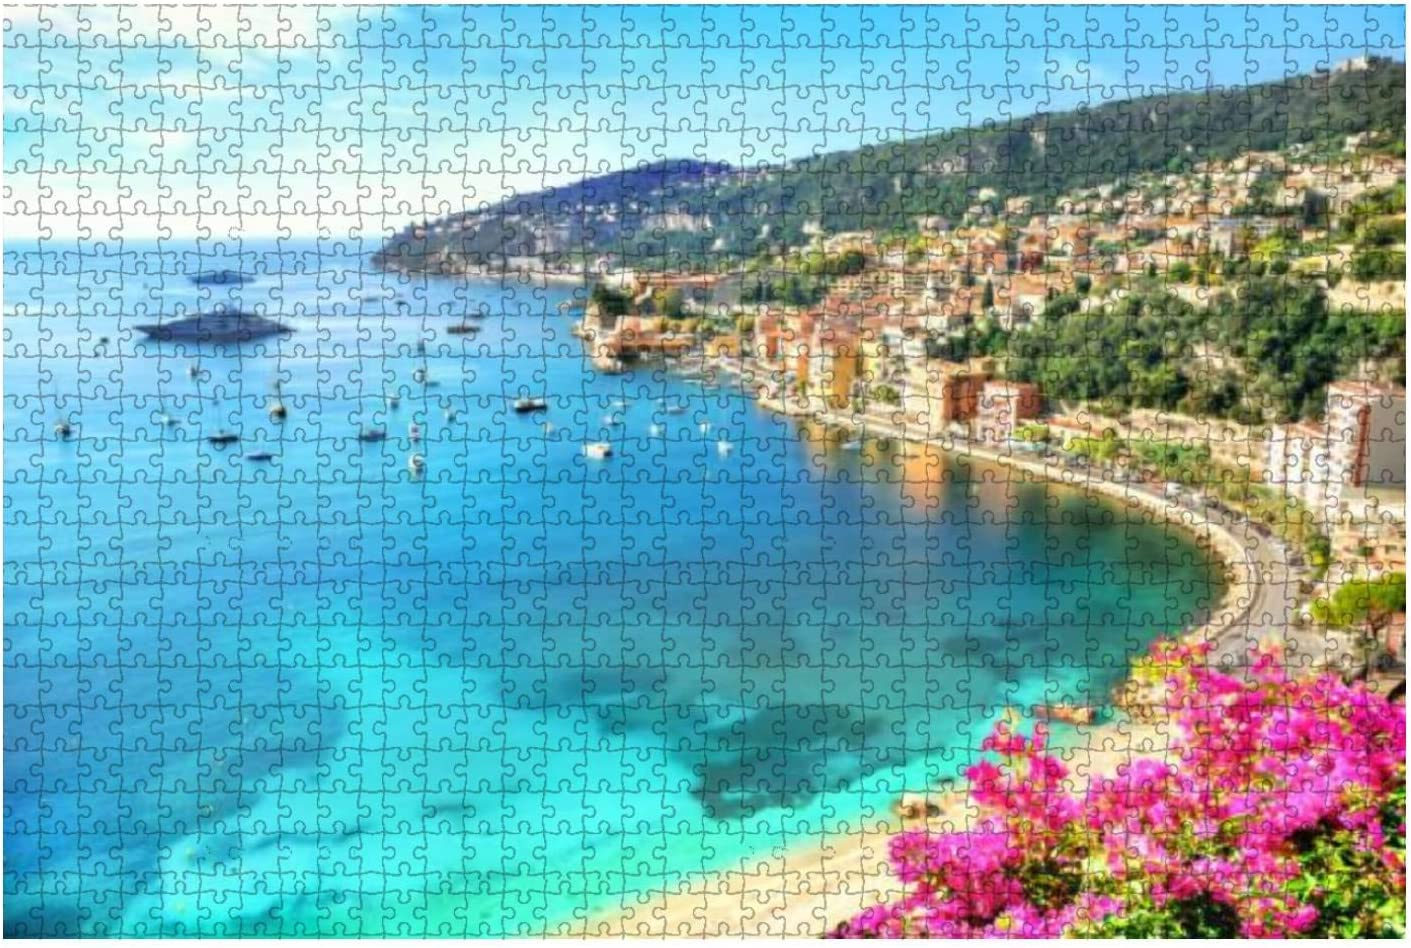 villefranche sur mer cote d'azur Riviera French Translated France Seasonal Wrap Introduction Water